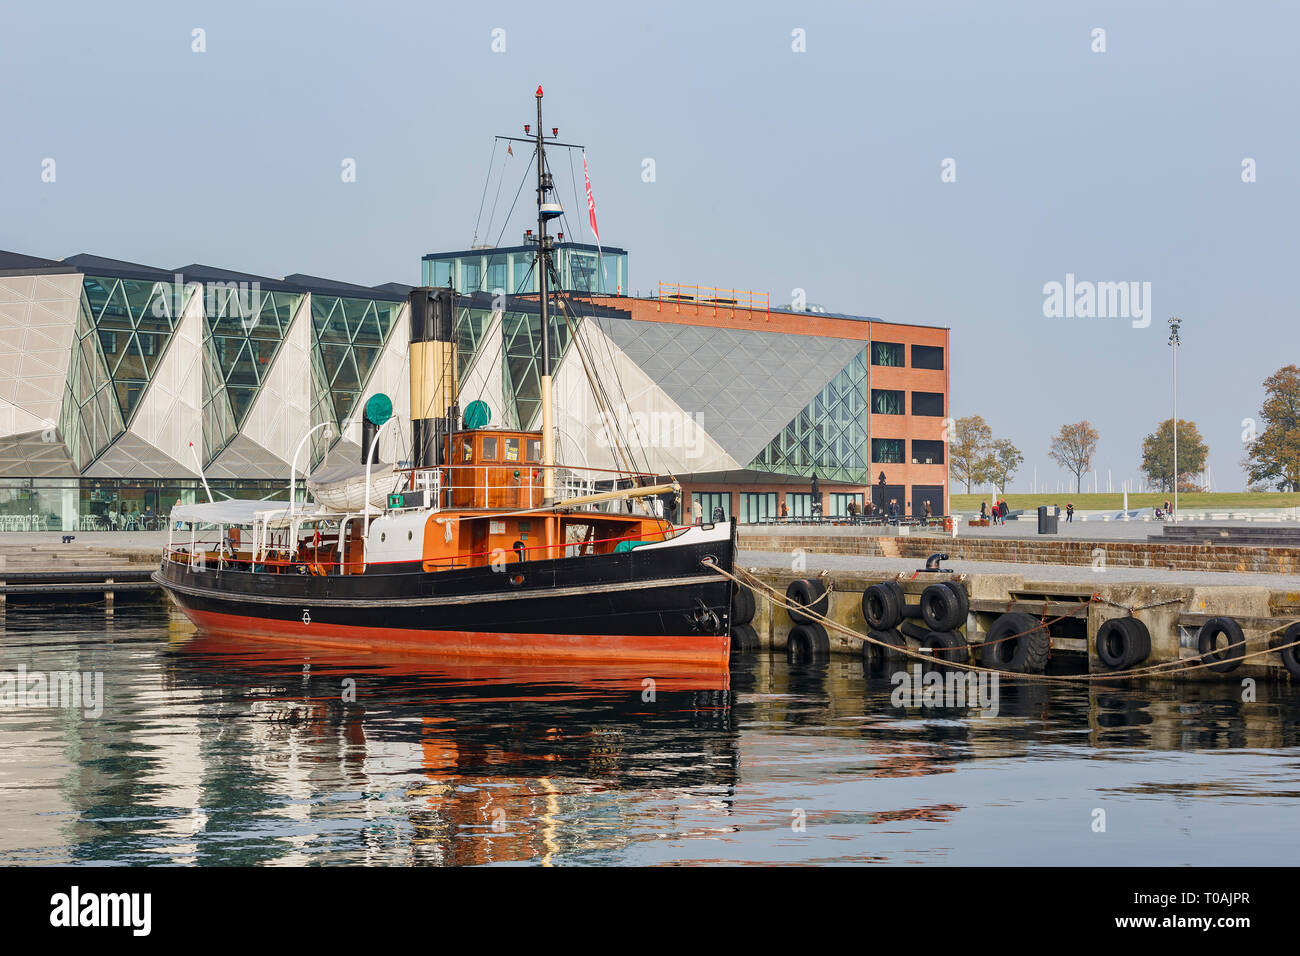 Denmark, NOV 1: Exterior view of the Culture Yard with a ship on NOV 1, 2015 at Denmark - Stock Image